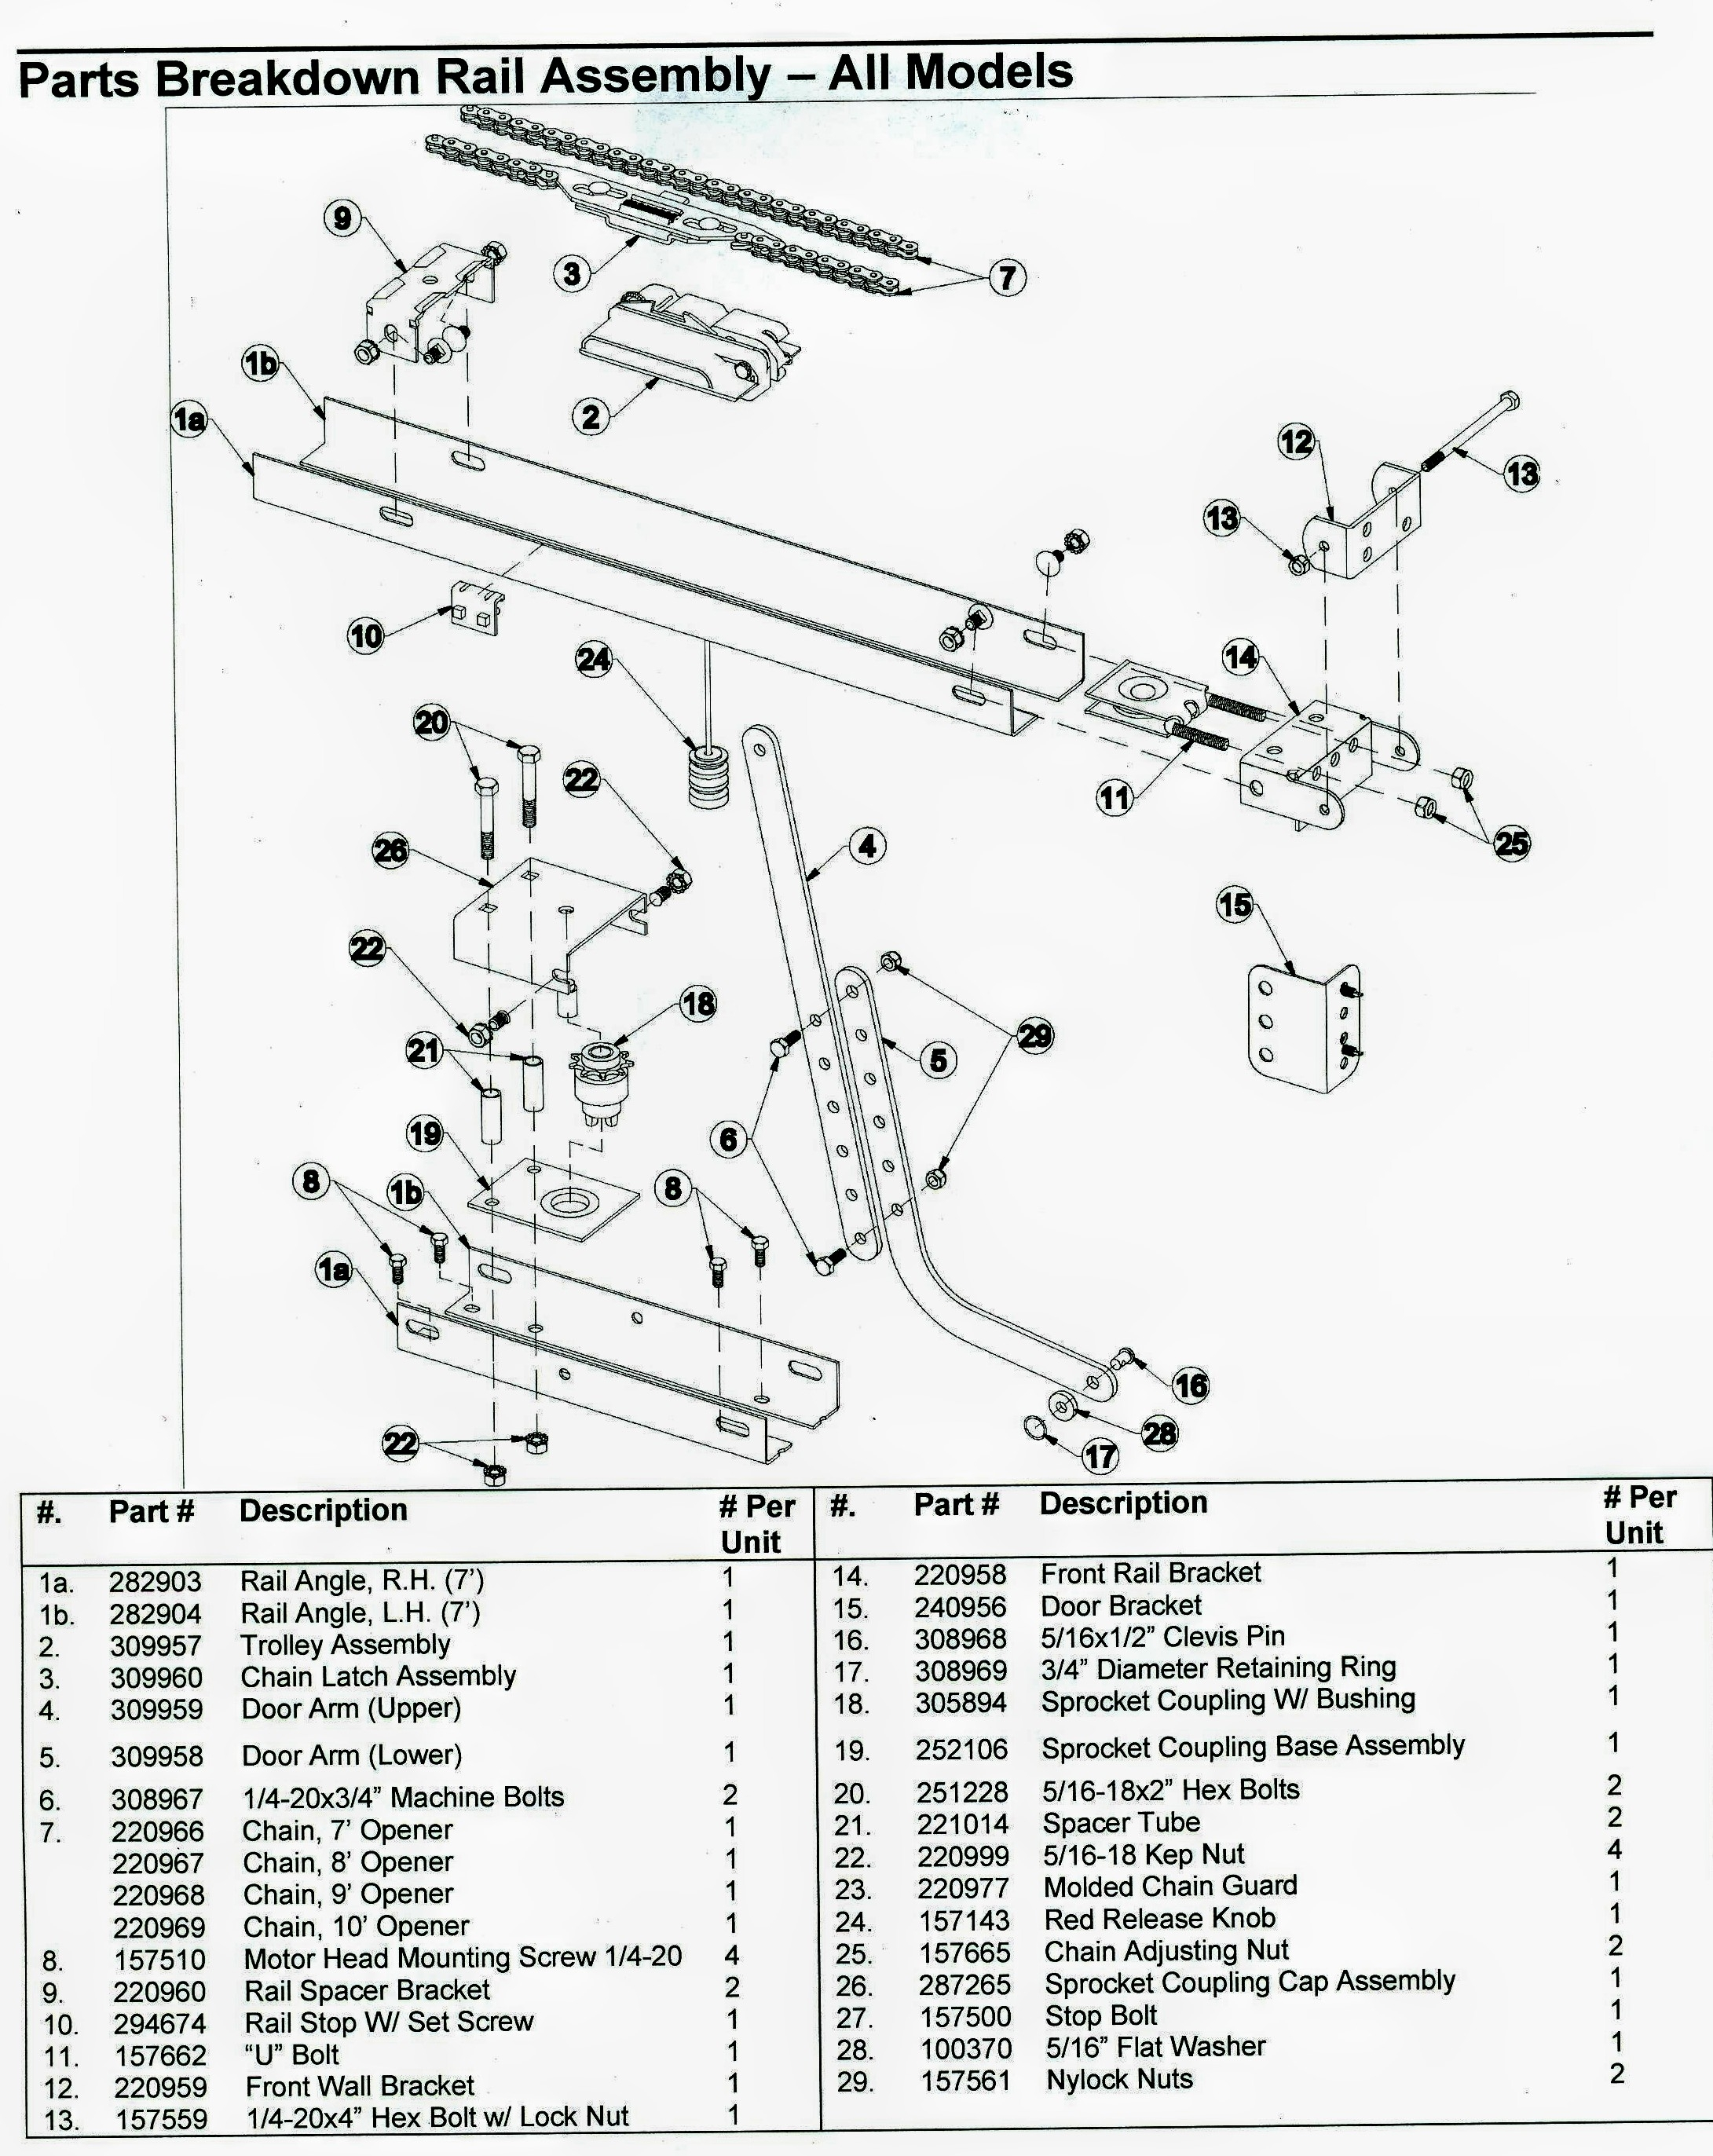 wiring diagram for liftmaster garage door opener on free throughout chamberlain garage door opener parts diagram wiring diagram for liftmaster garage door opener on free chamberlain garage door opener wiring diagram at crackthecode.co